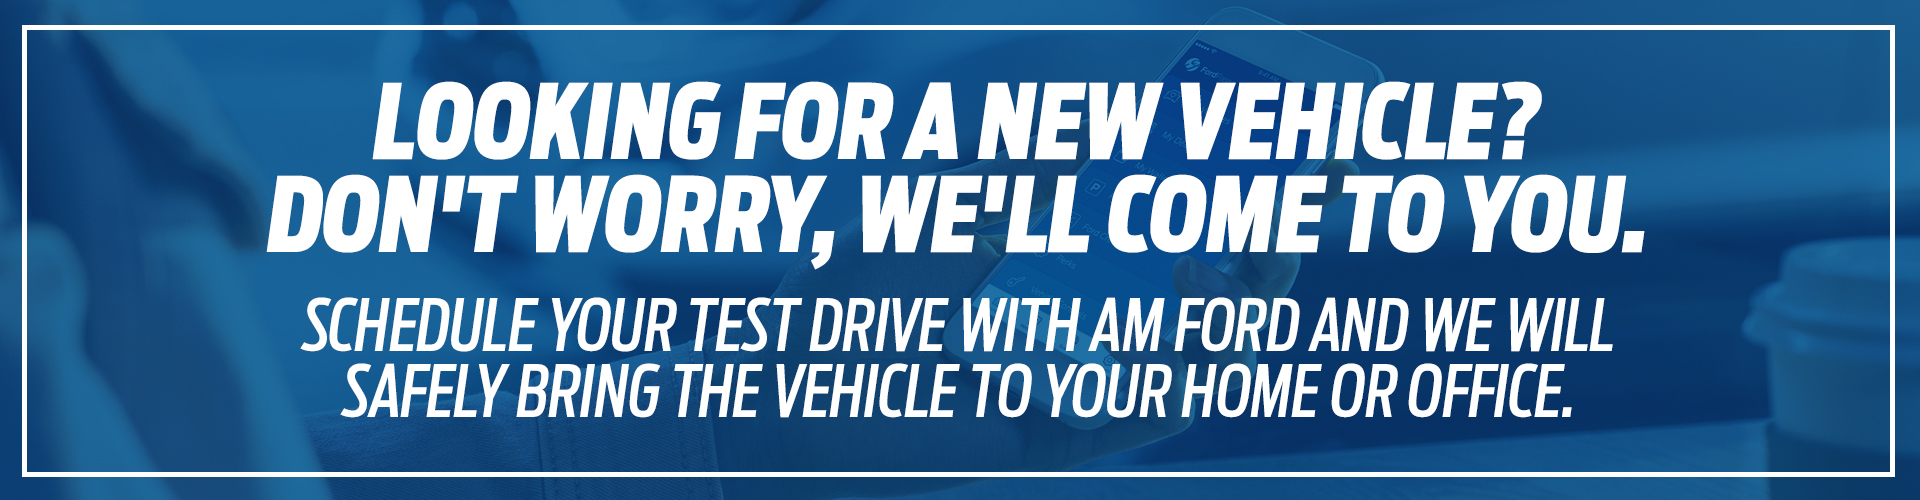 New Vehicle Delivery in Trail, BC | AM Ford